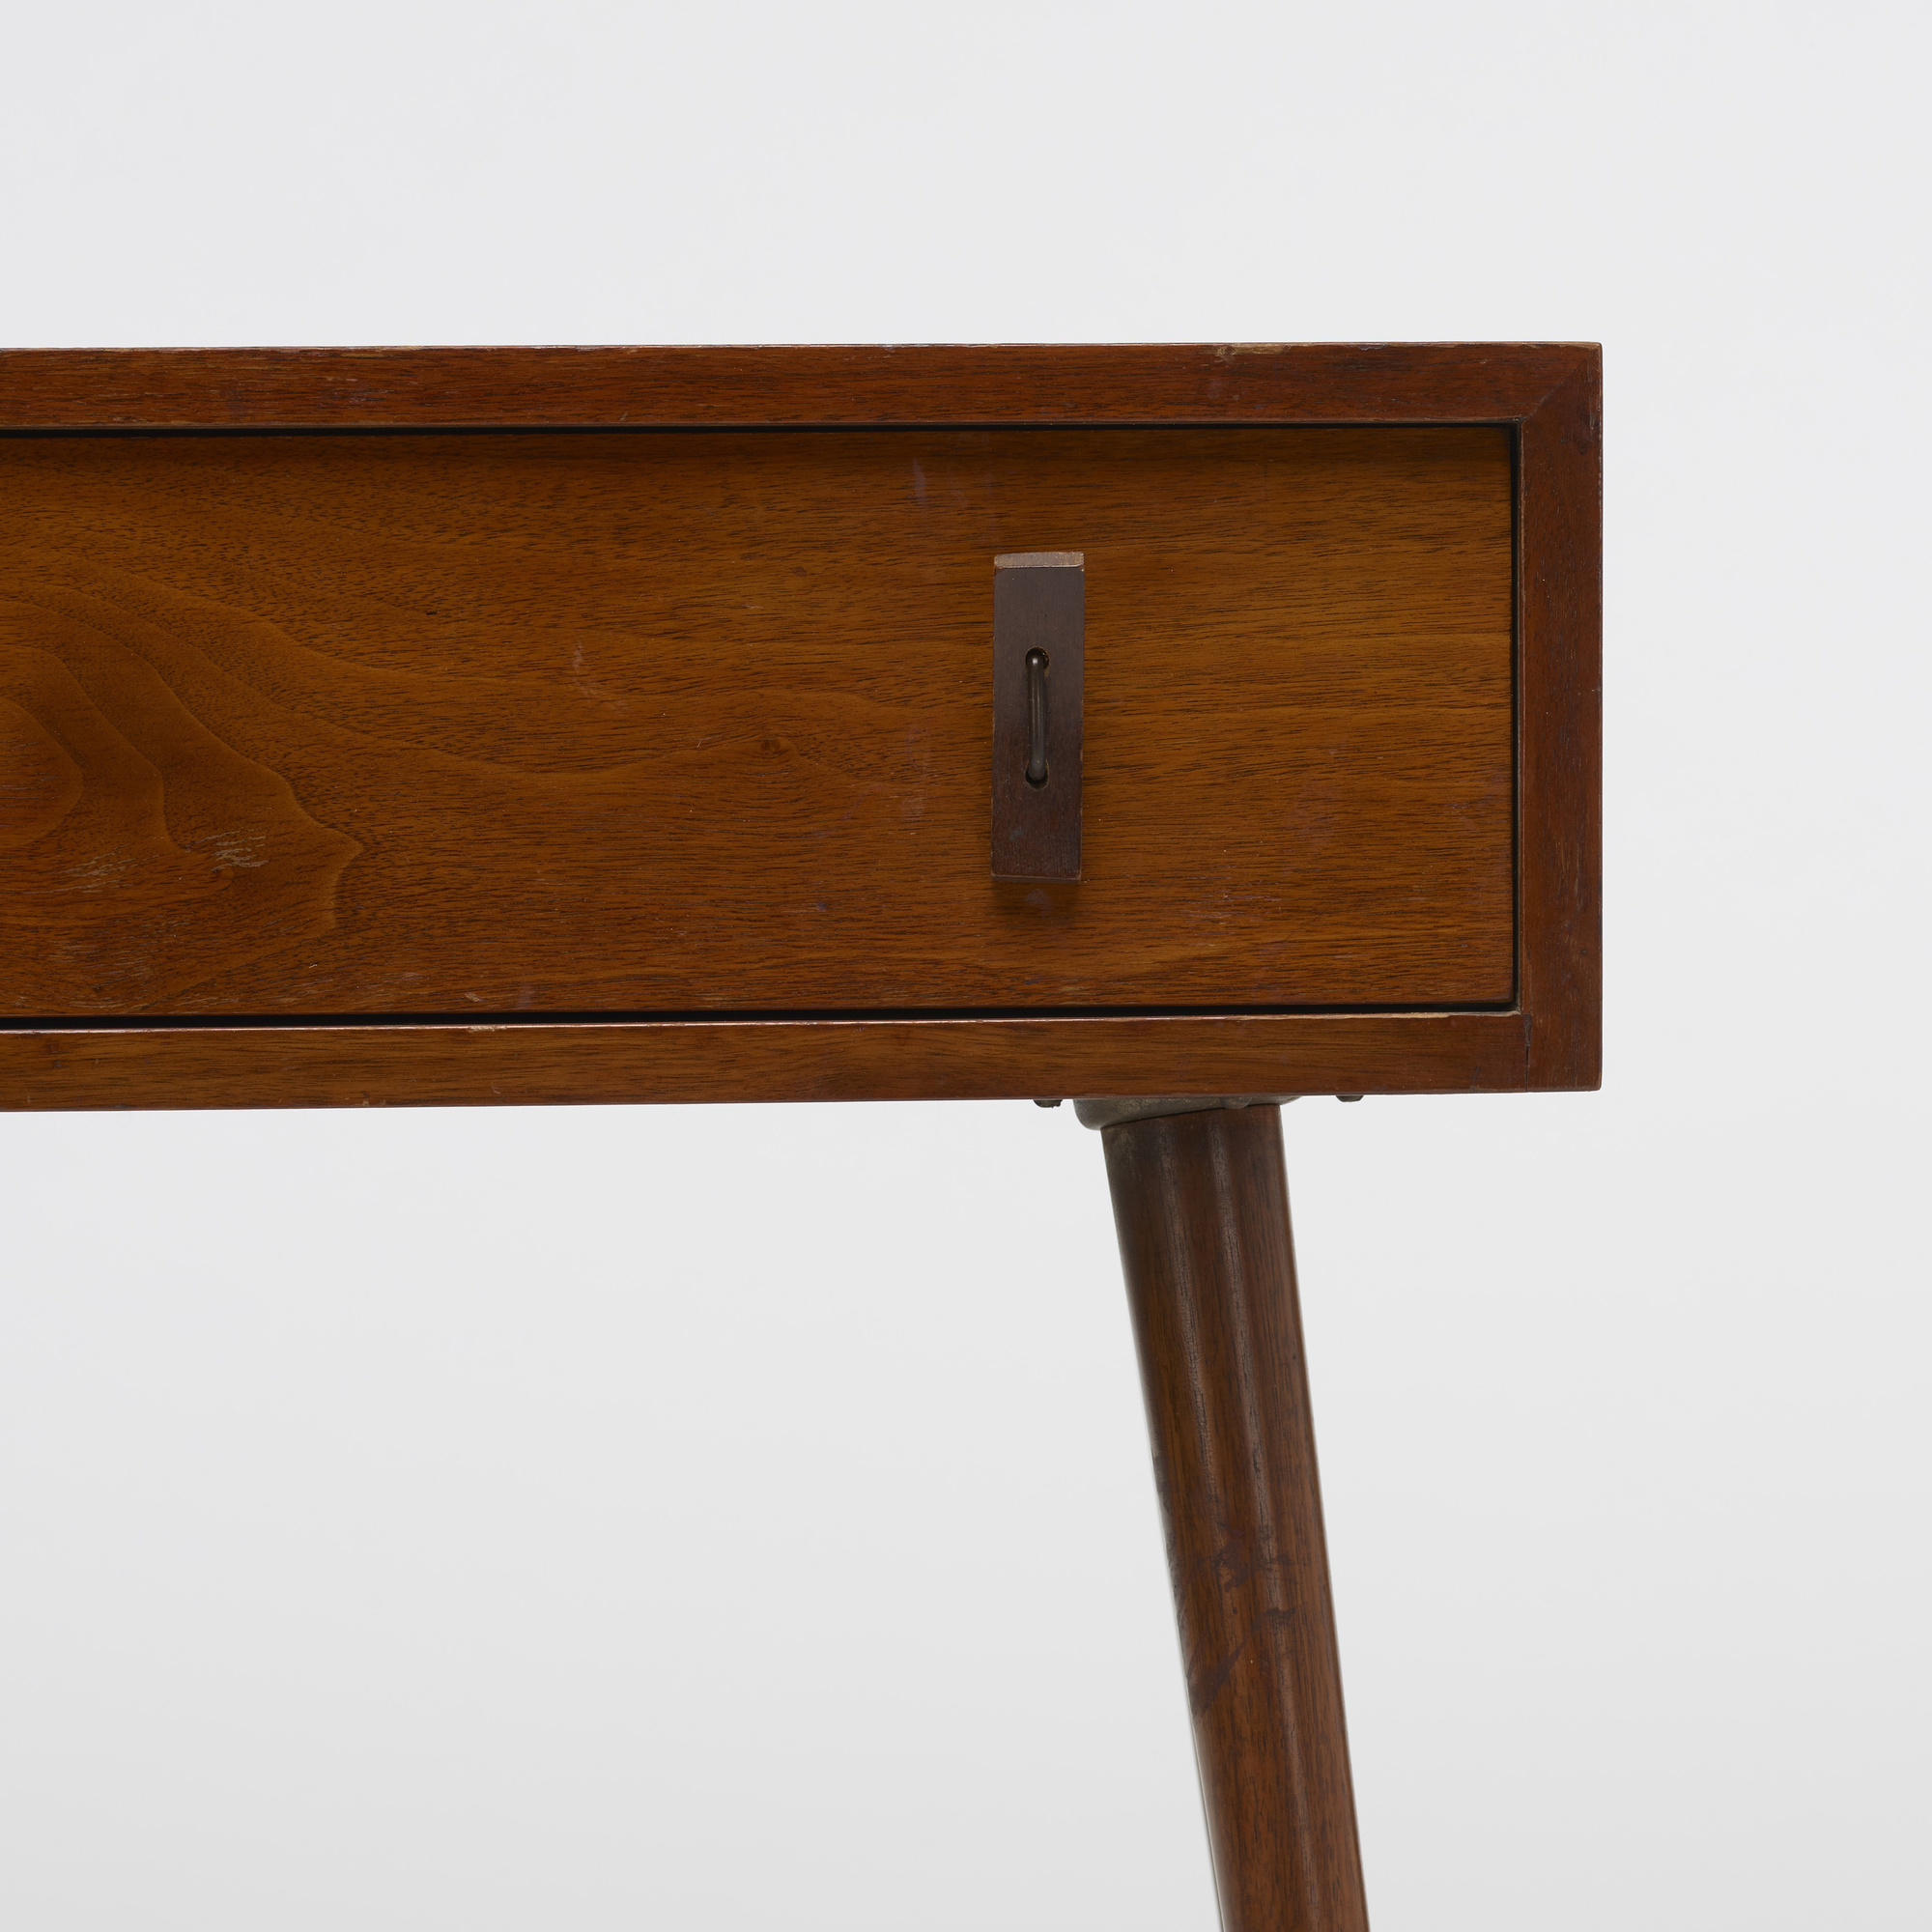 812: Stanley Young / console, model 1602 (3 of 3)